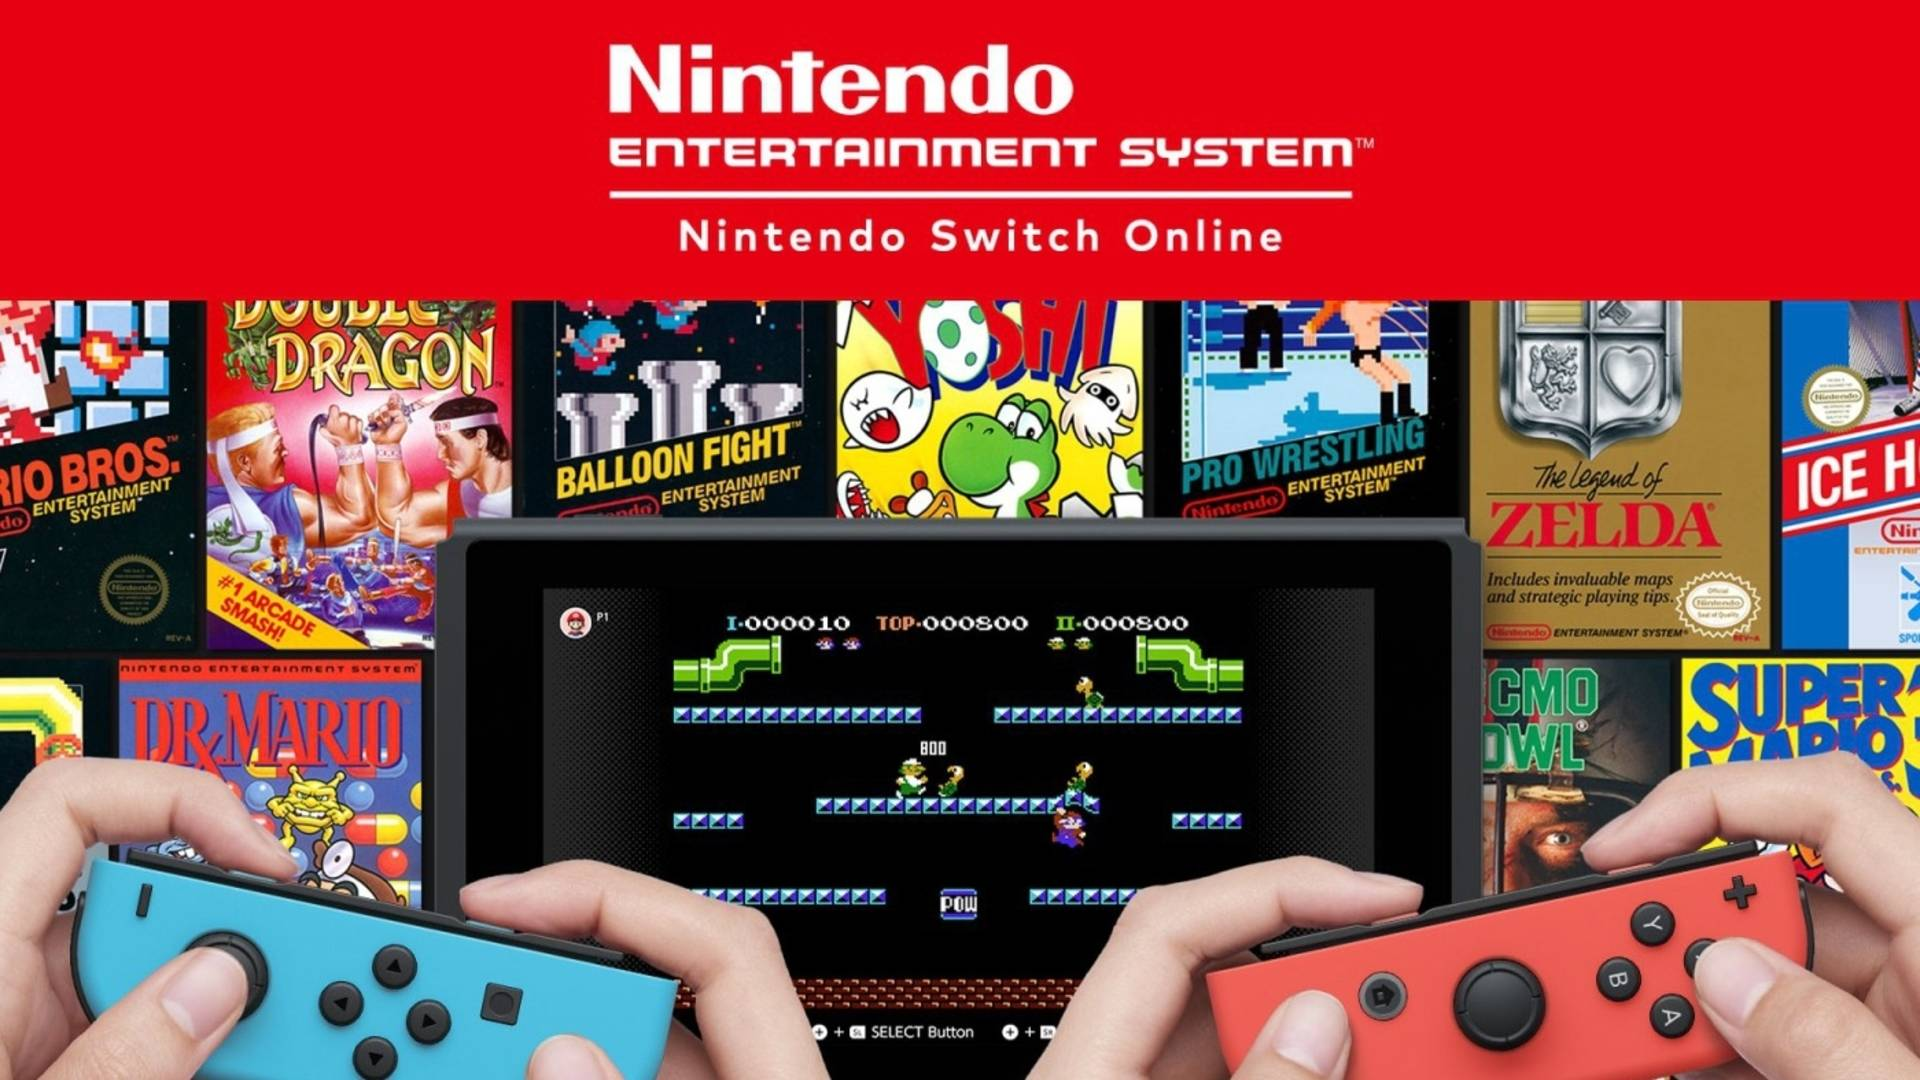 Nintendo Switch NES Online